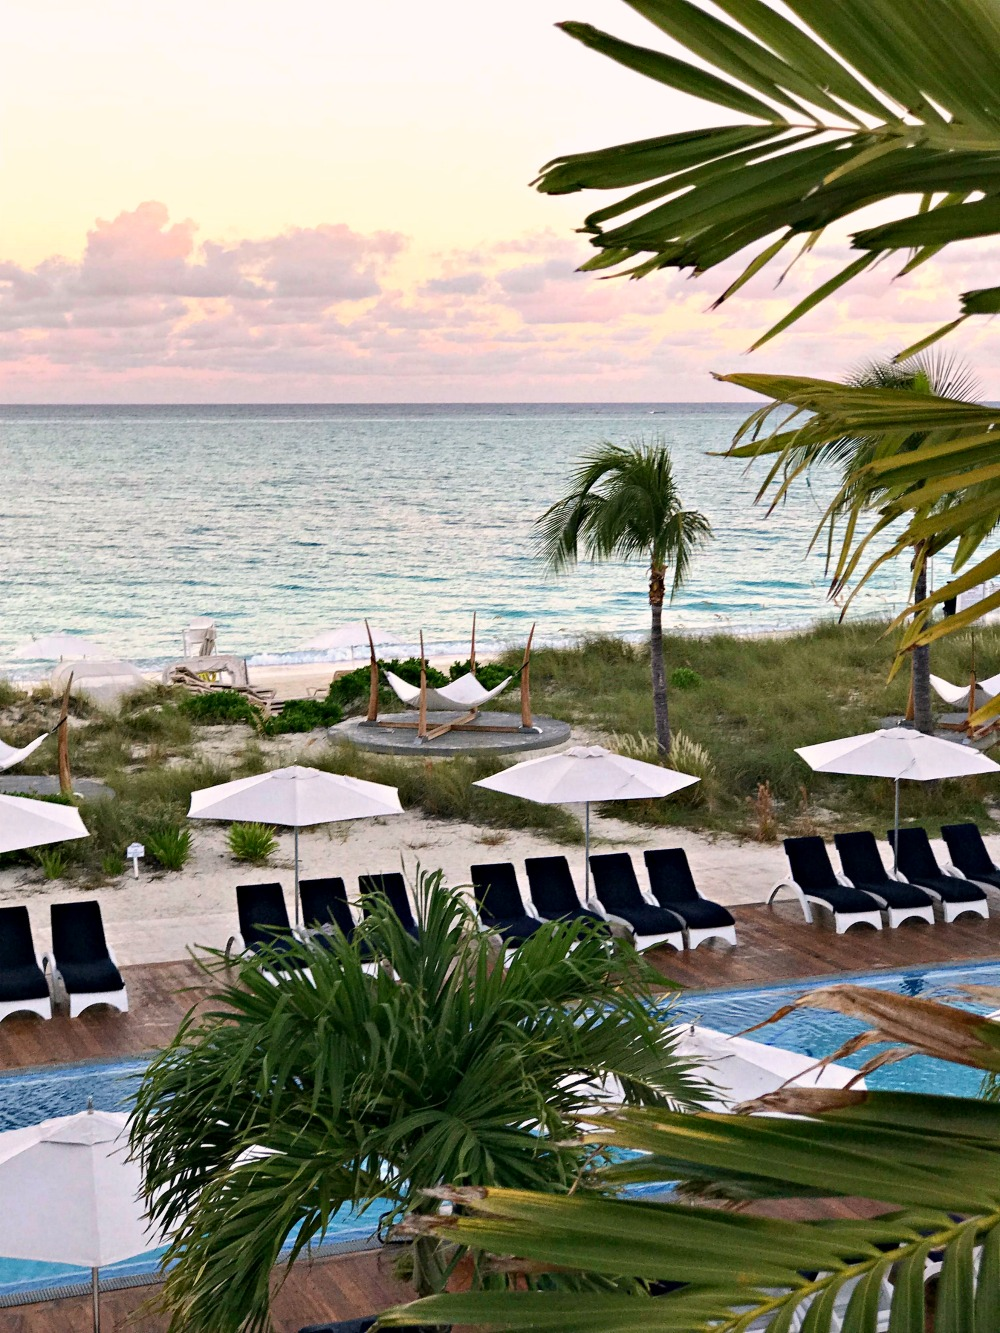 Fast Facts about Turks and Caicos Islands